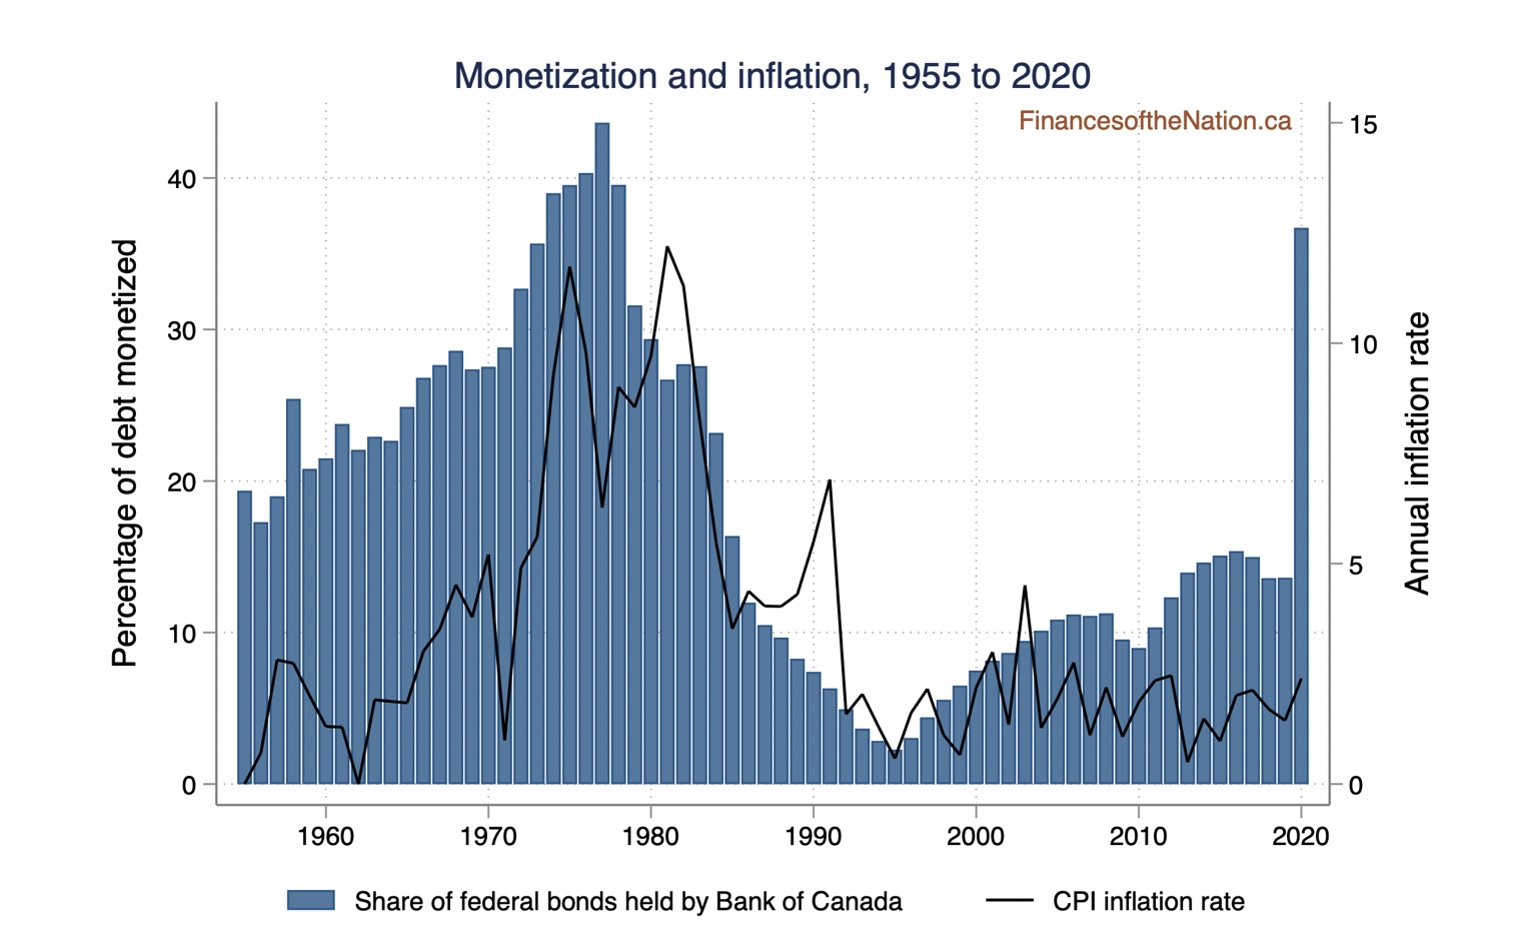 Chart showing monetization and inflation